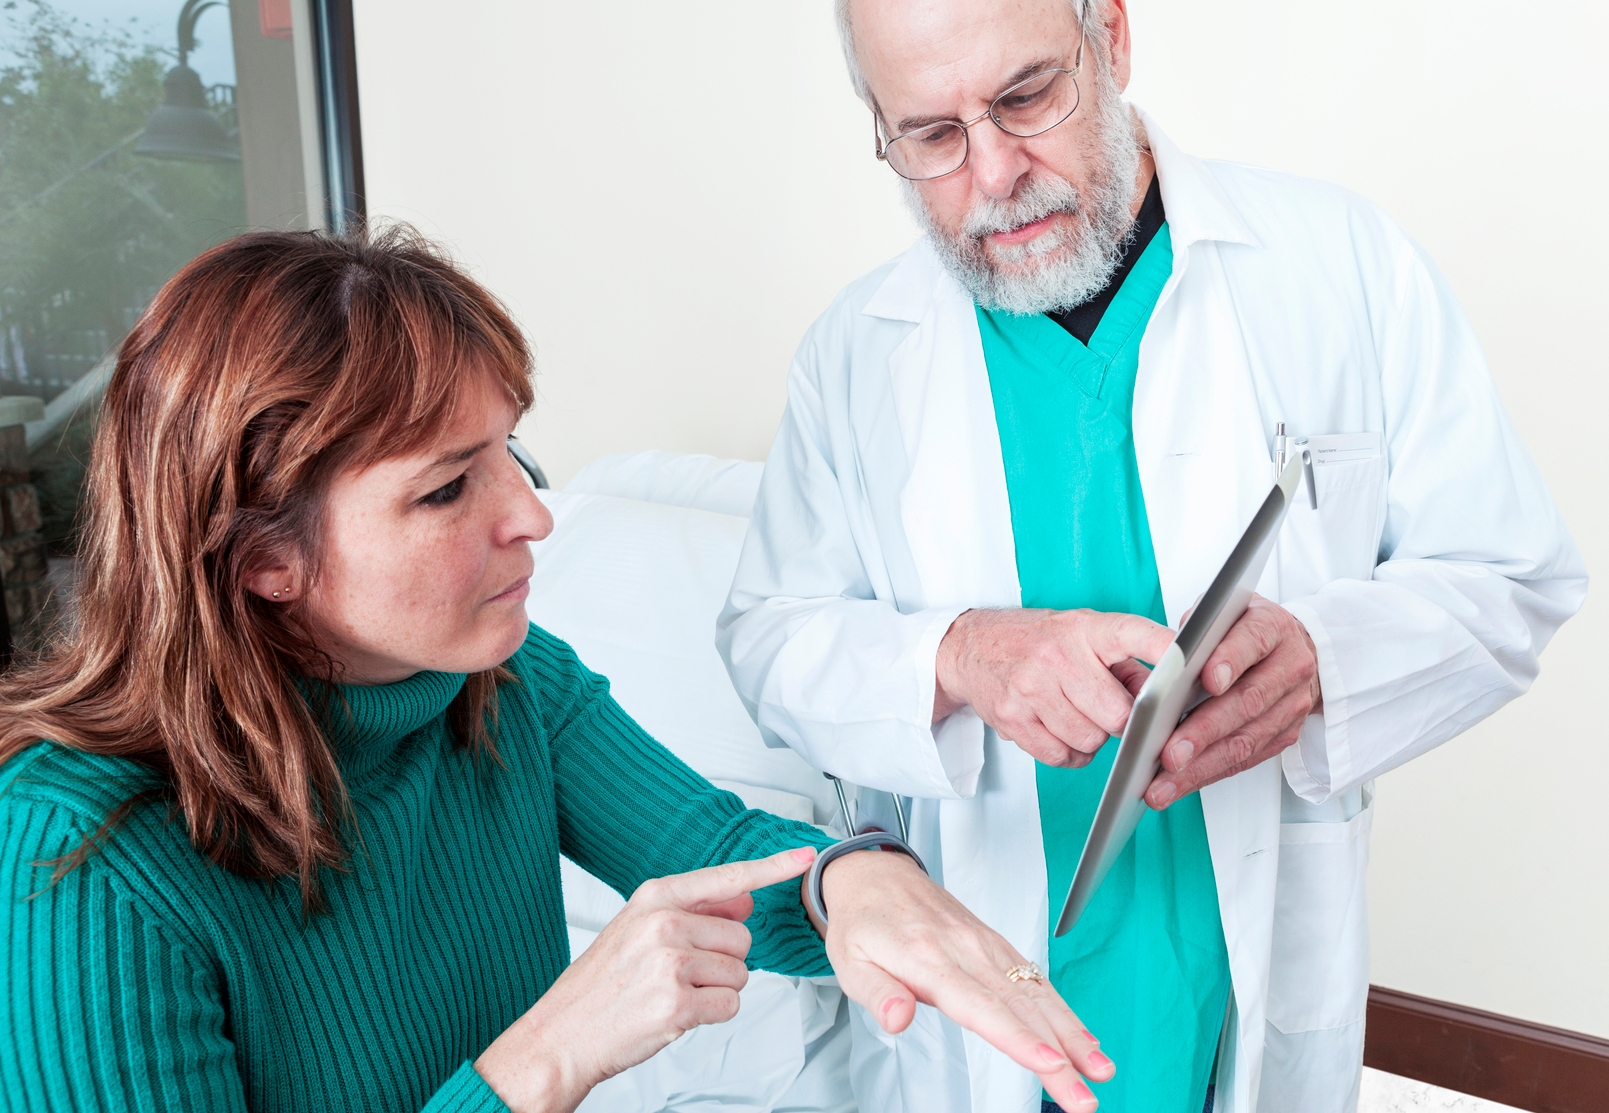 Patient with wearable device talking to doctor with tablet